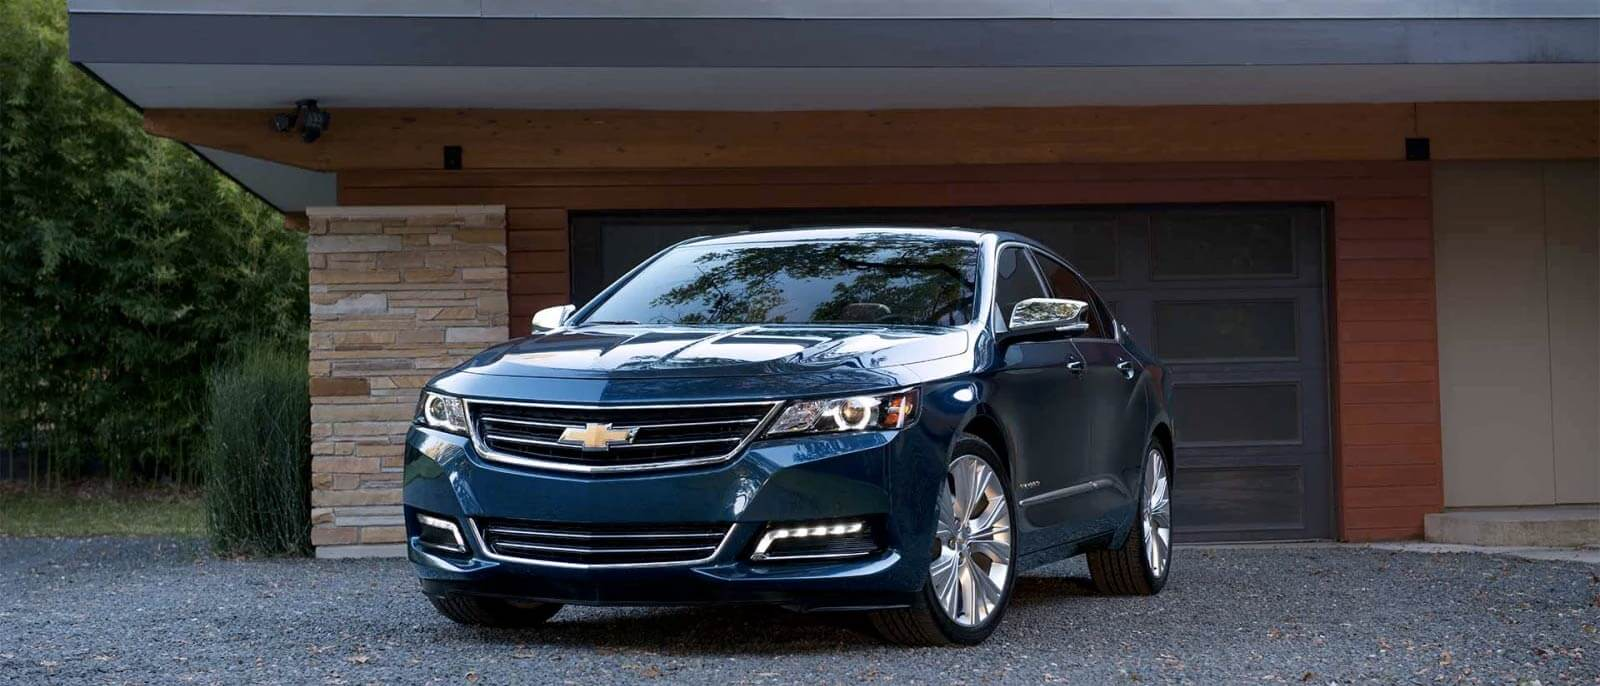 2017 Chevrolet Impala in blue in the driveway